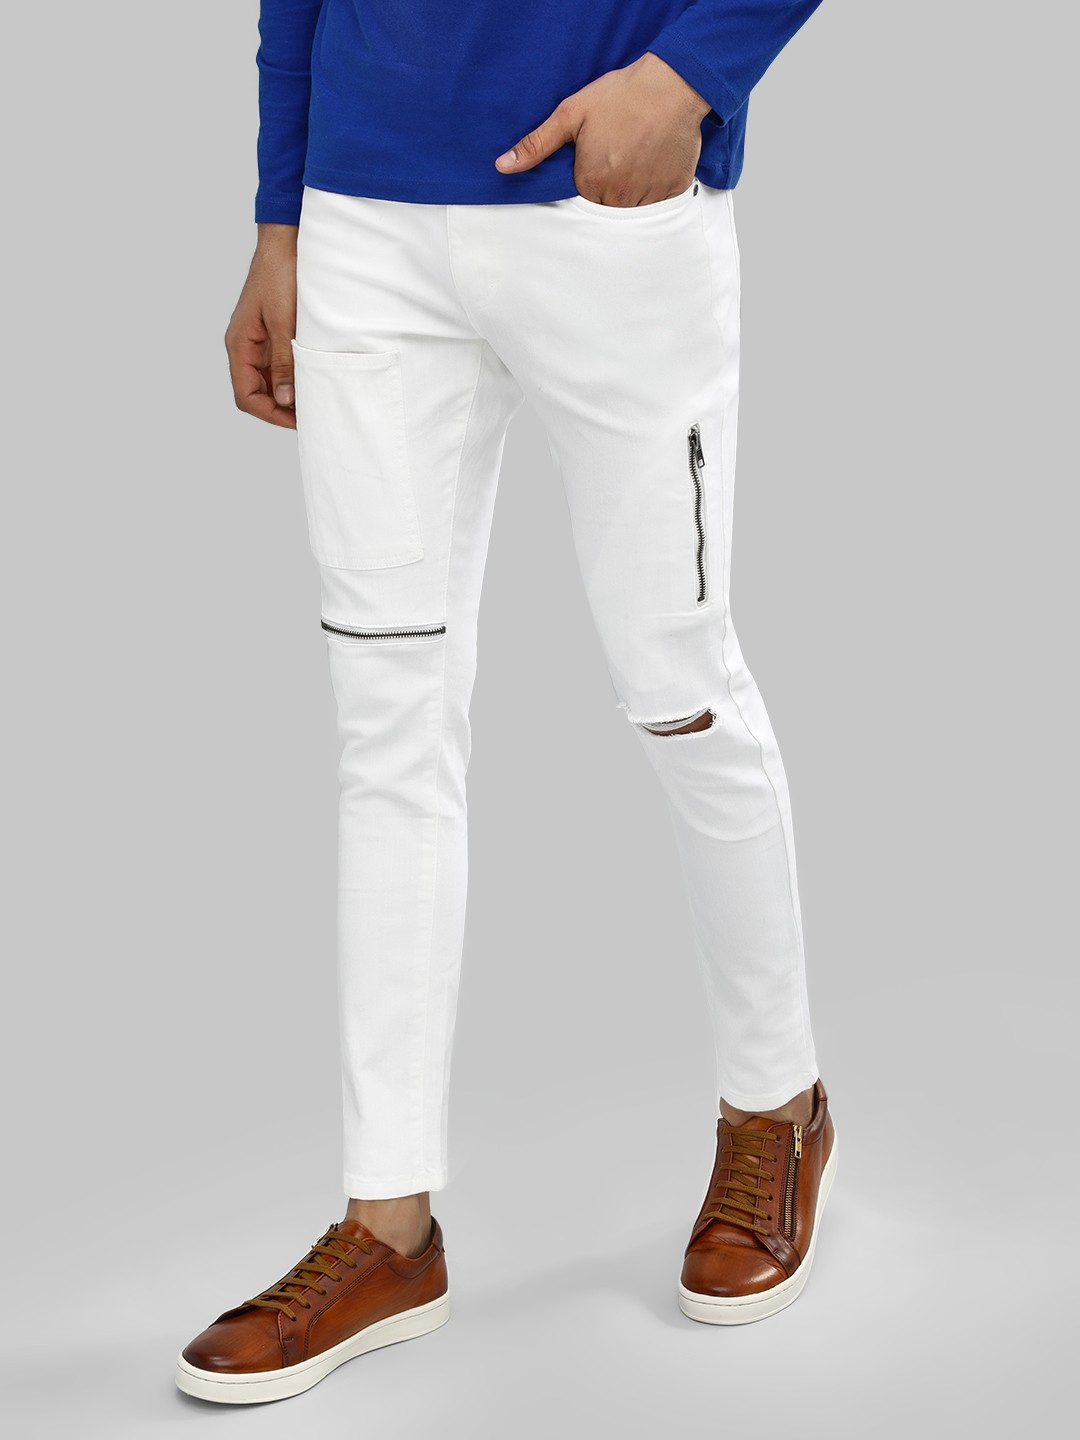 Kultprit White Slim Fit Jeans With Knee Zip 1